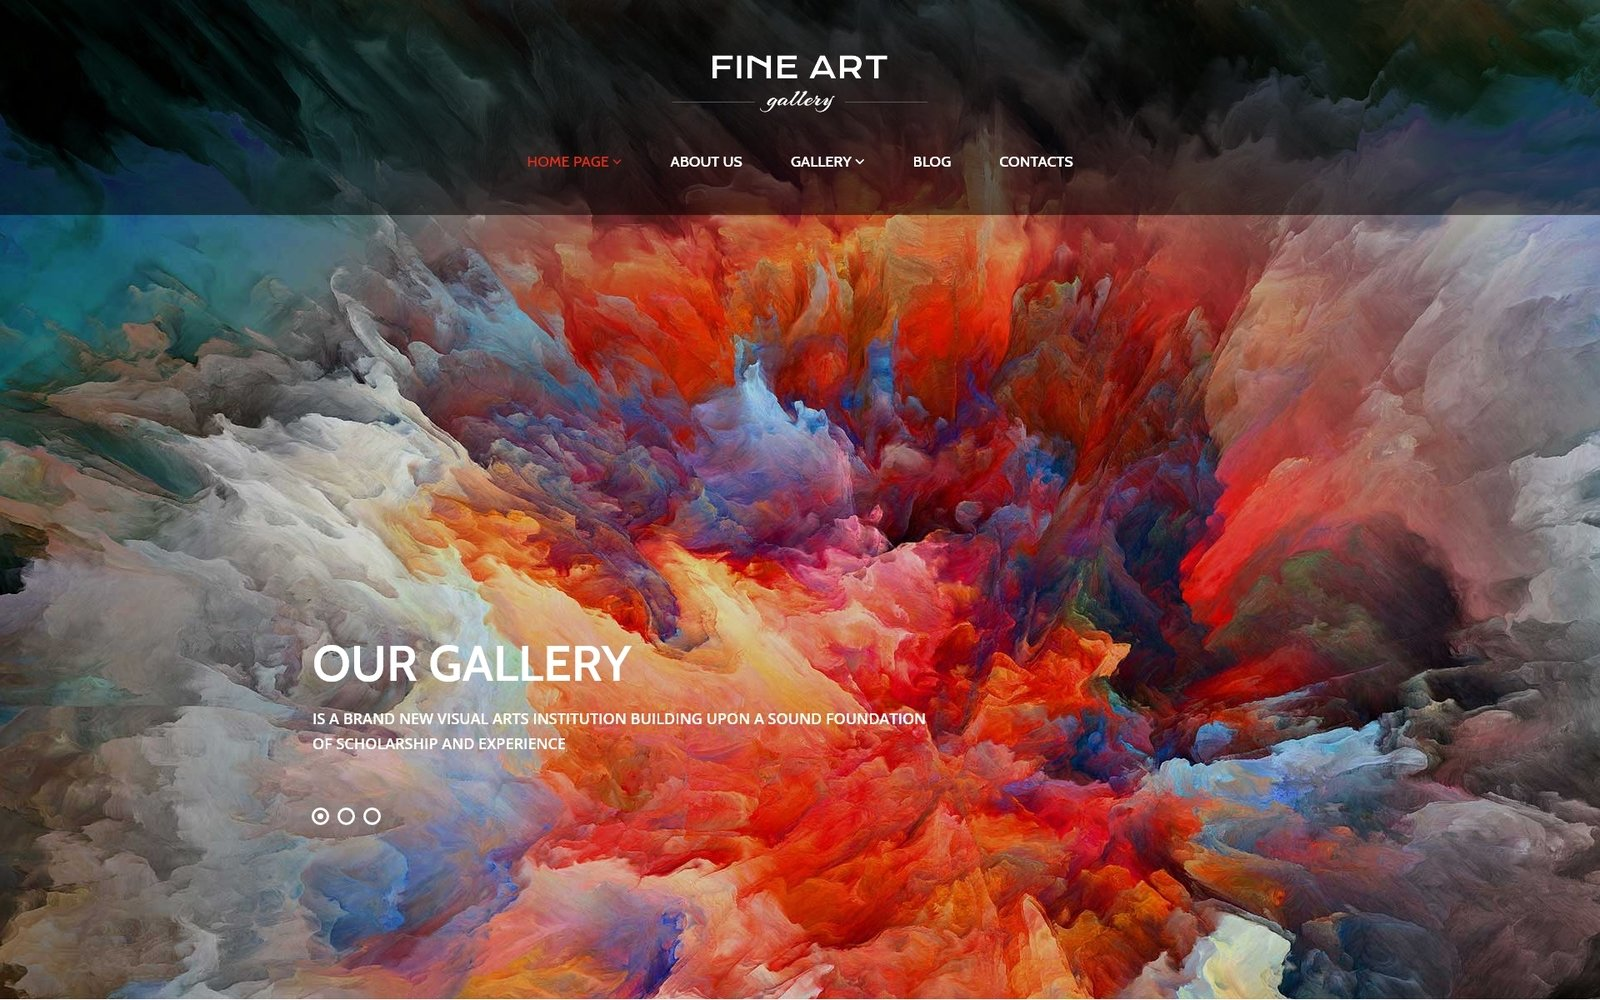 Thème WordPress adaptatif pour galerie d'art #56092 - screenshot